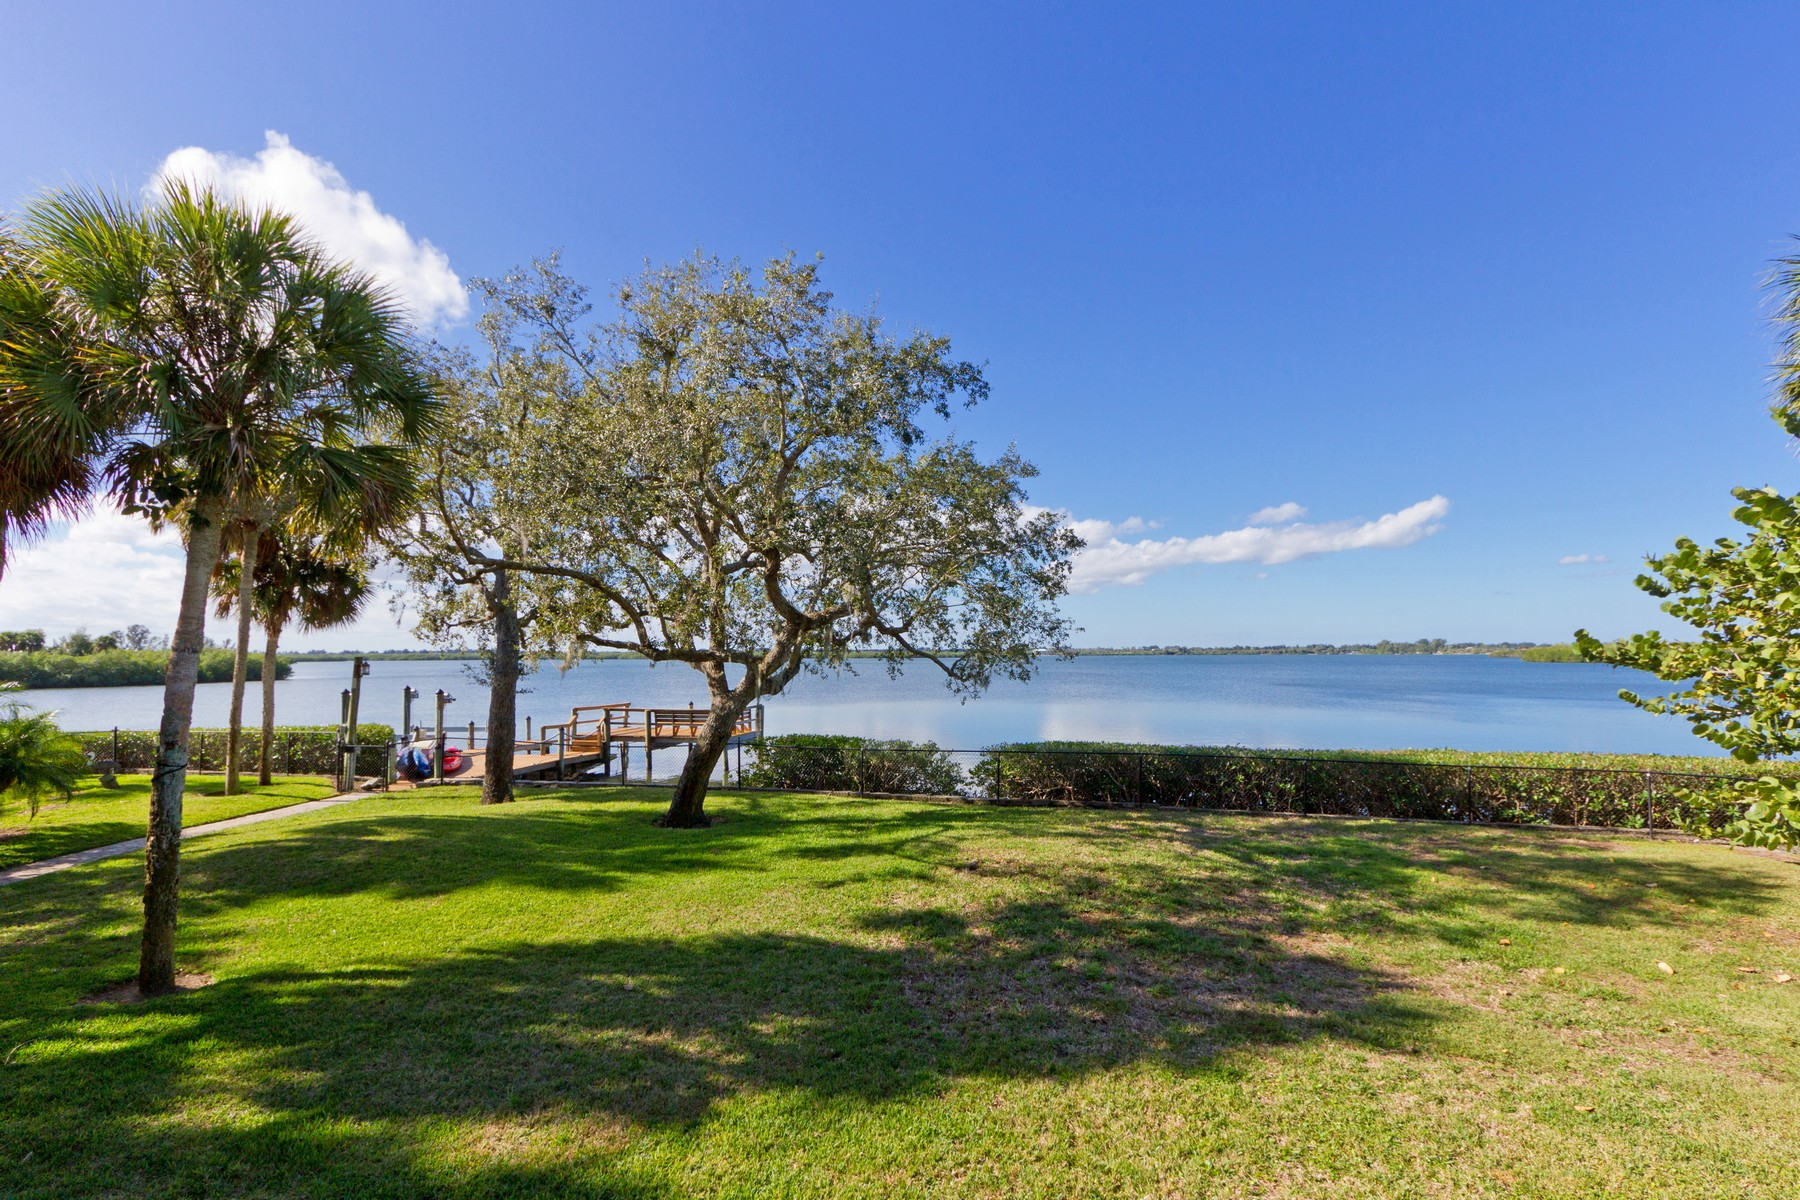 Single Family Home for Sale at Breathe in Endless Views of Playful Dolphin, Vivid Sunsets and Peaceful Kayakers 335 Cathedral Oaks Dr Vero Beach, Florida 32963 United States